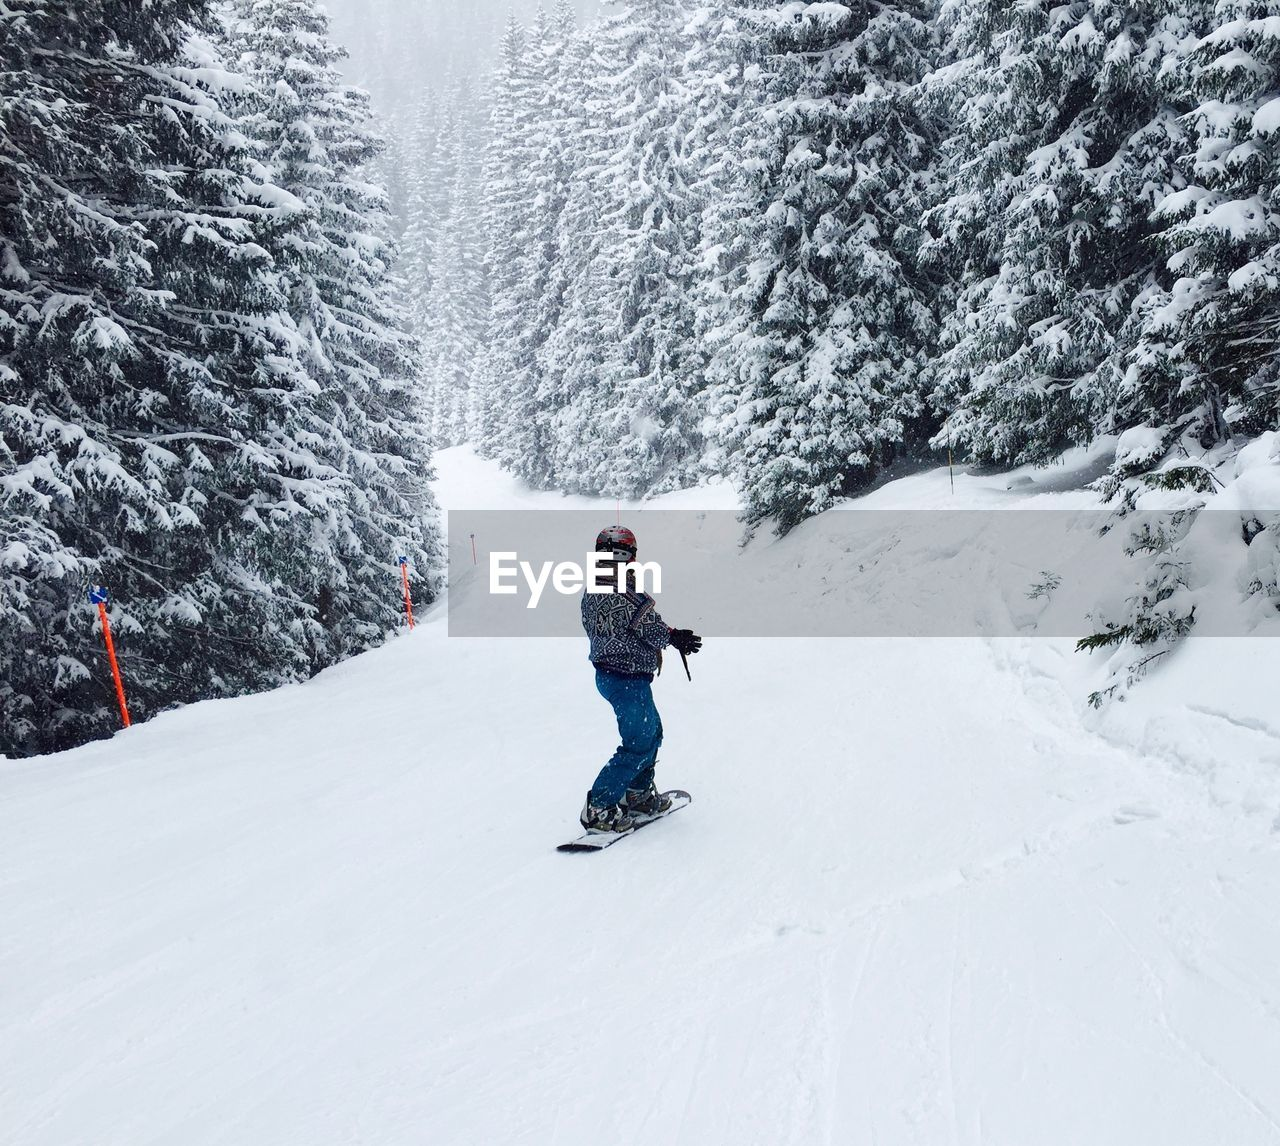 Rear View Of Person Snowboarding In Snow Covered Forest